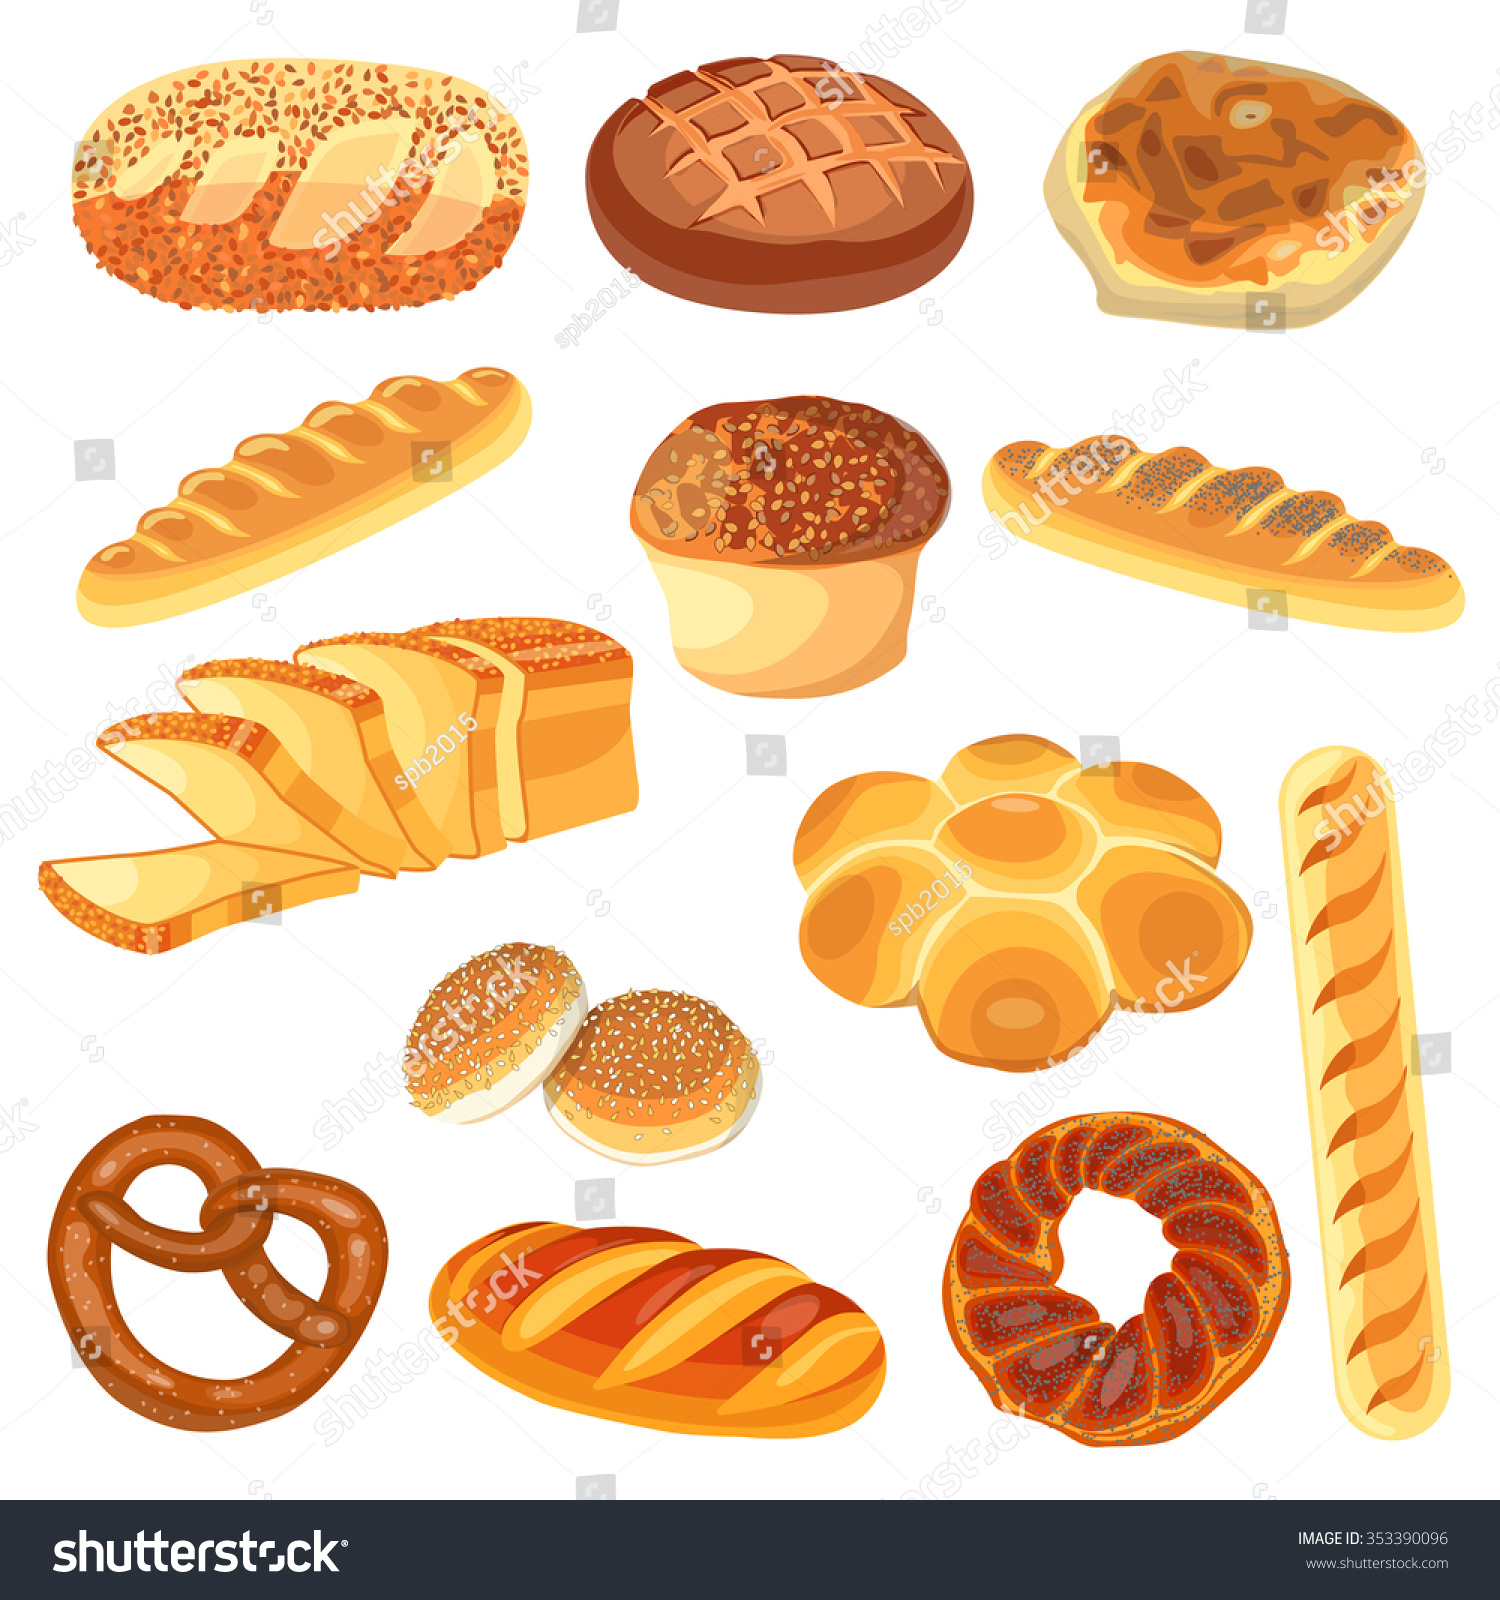 set food rye wheat whole grain stock photo photo vector rh shutterstock com Hunger Clip Art Cereal Clip Art